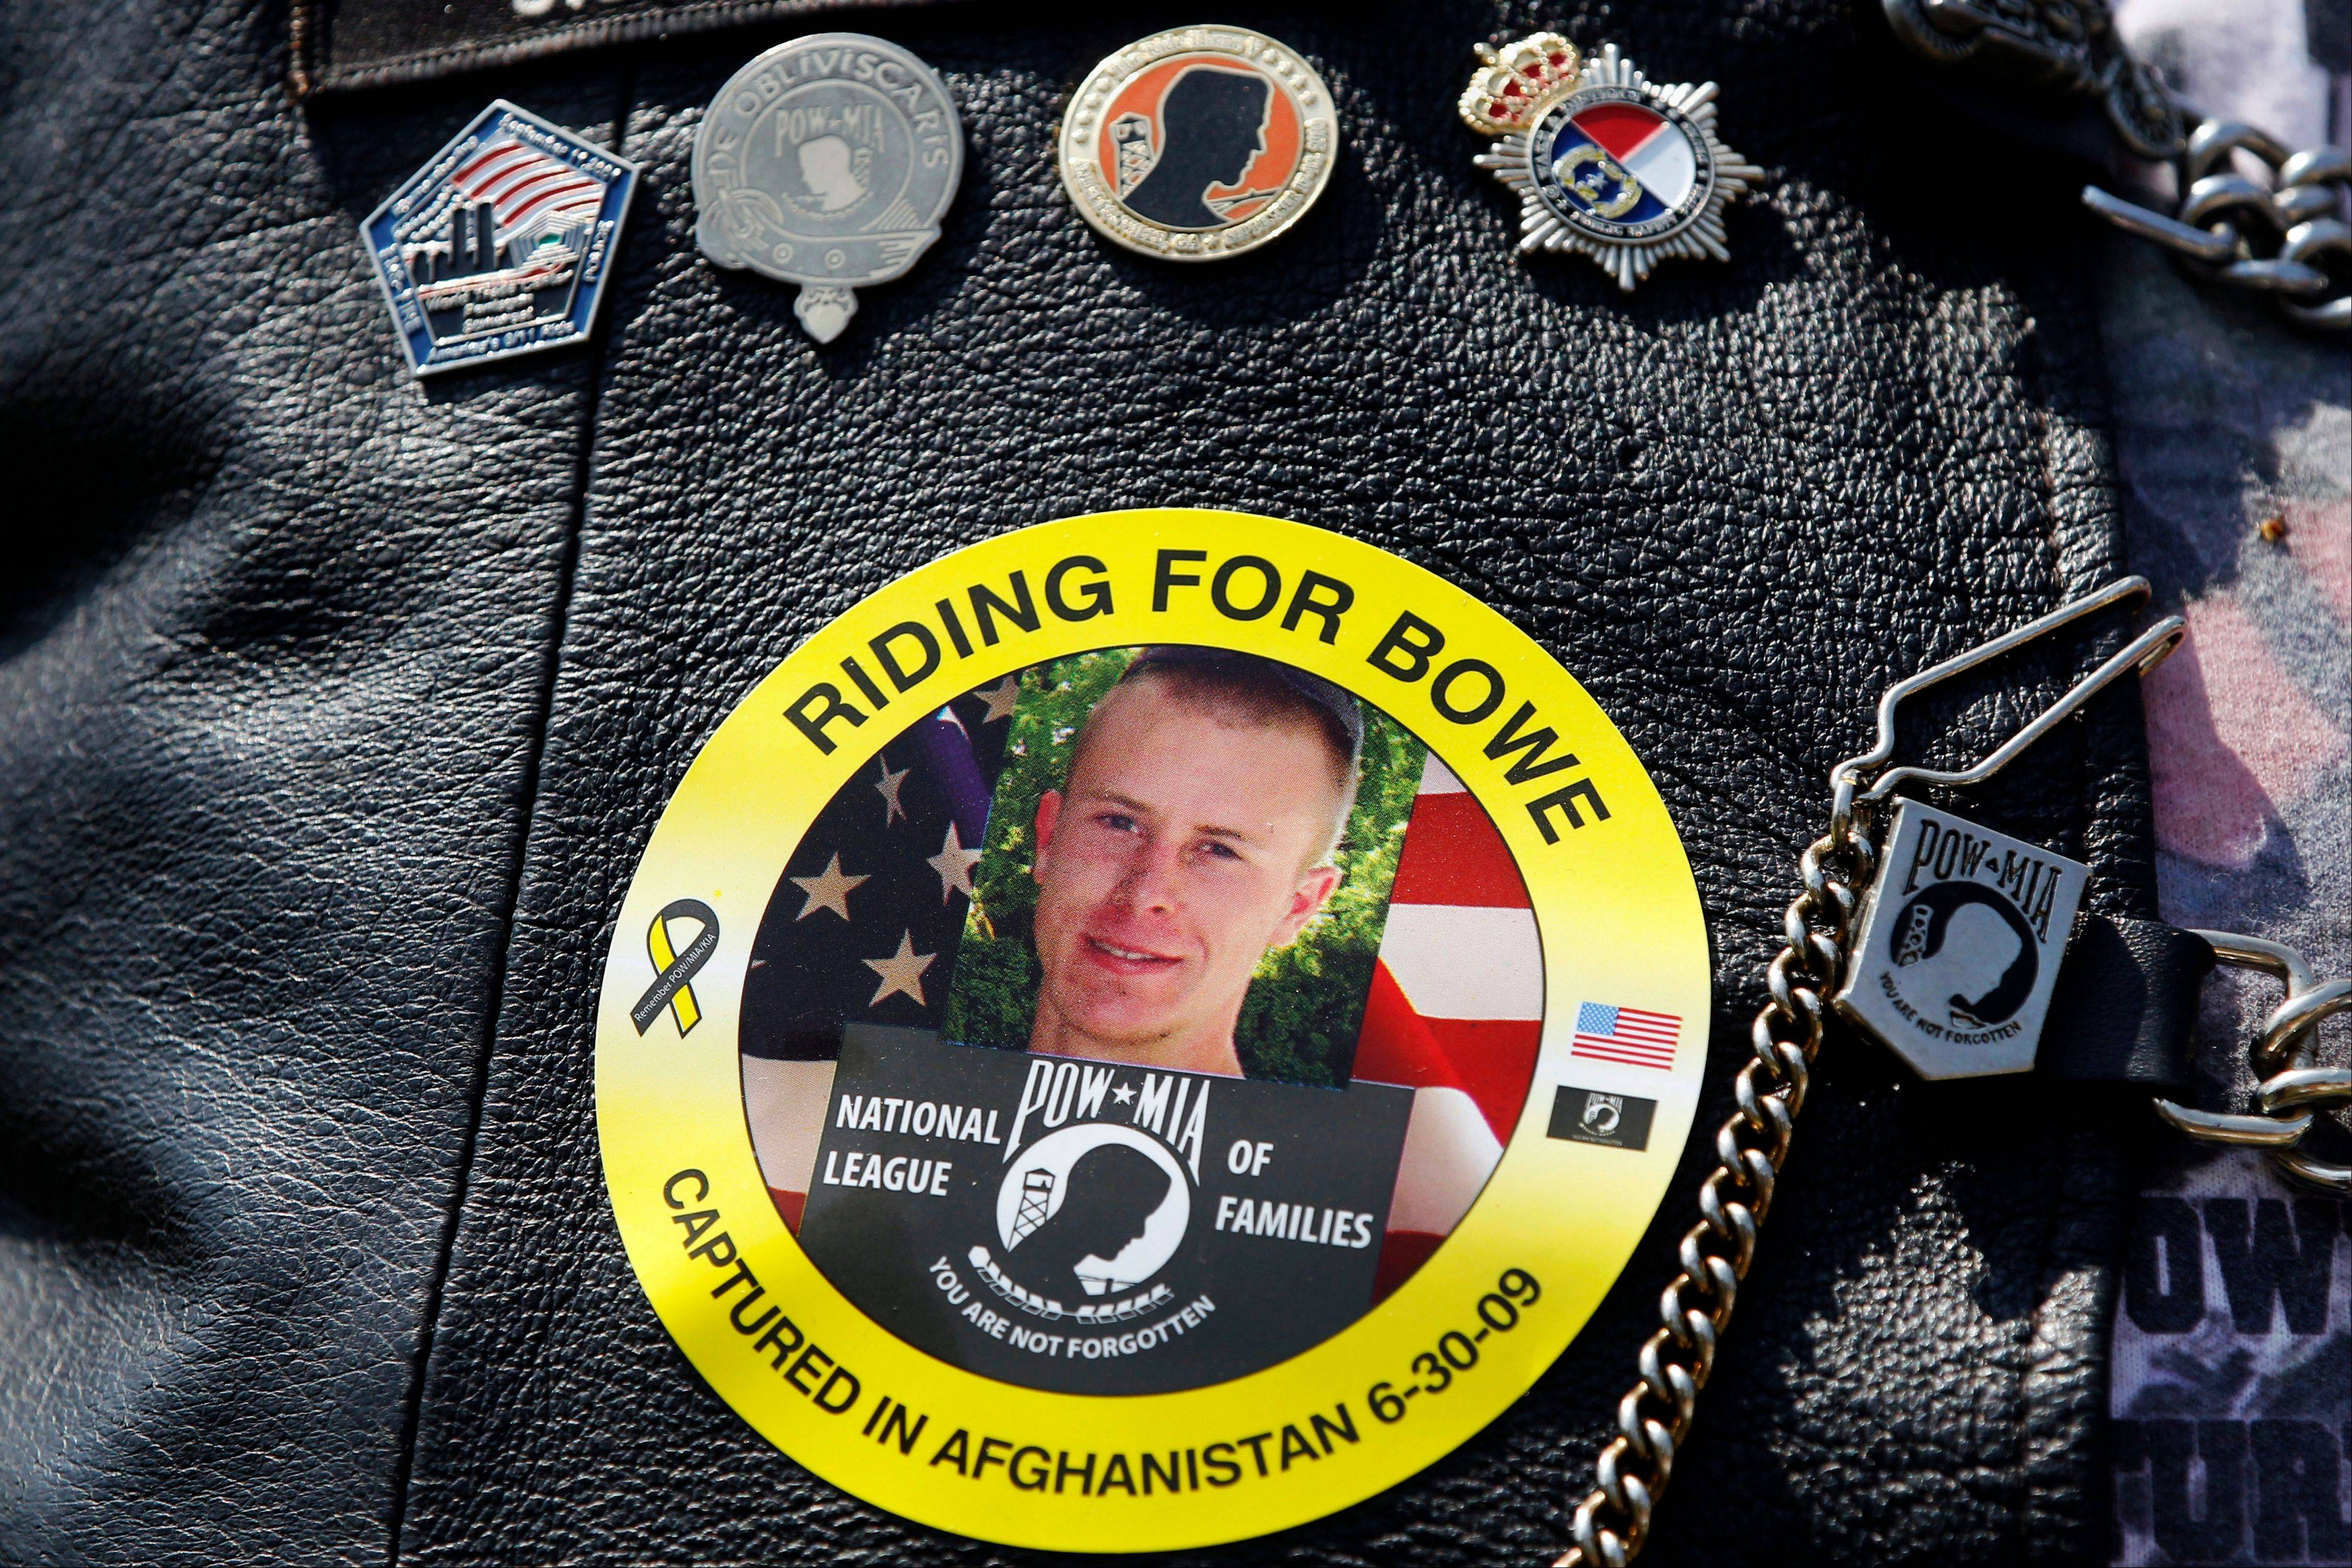 An image of Army Sgt. Bowe Bergdahl of Hailey, Idaho, who is being held captive in Afghanistan, is worn at a rally for POW/MIA awareness. A Taliban spokesman said Thursday they are ready to hand over U.S. Army Sgt. Bowe Bergdahl held captive since 2009 in exchange for five of their senior operatives being held at the Guantanamo Bay prison.